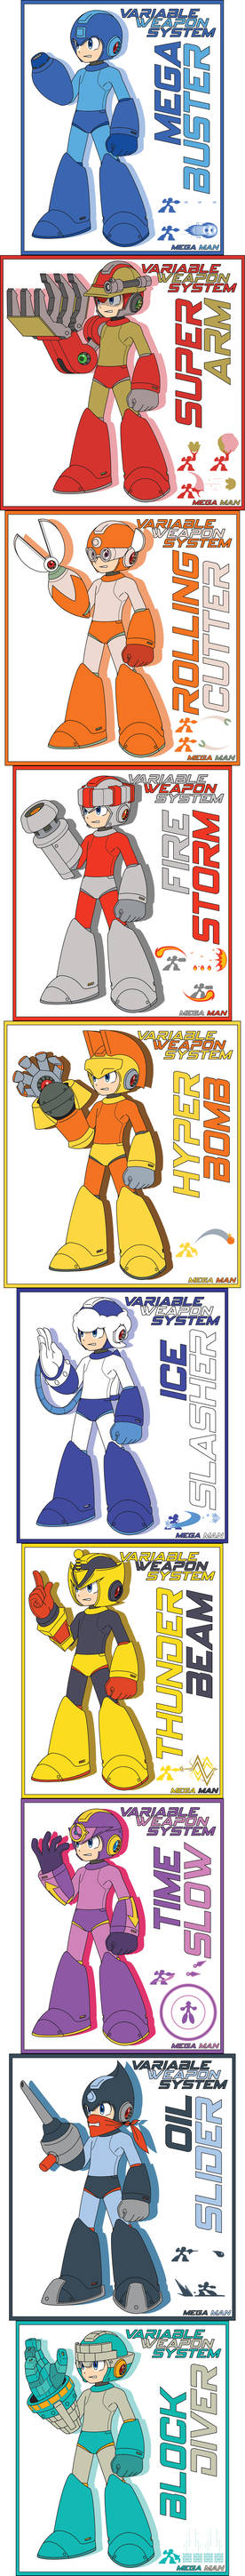 Mega Man 11 New Variable Weapon System